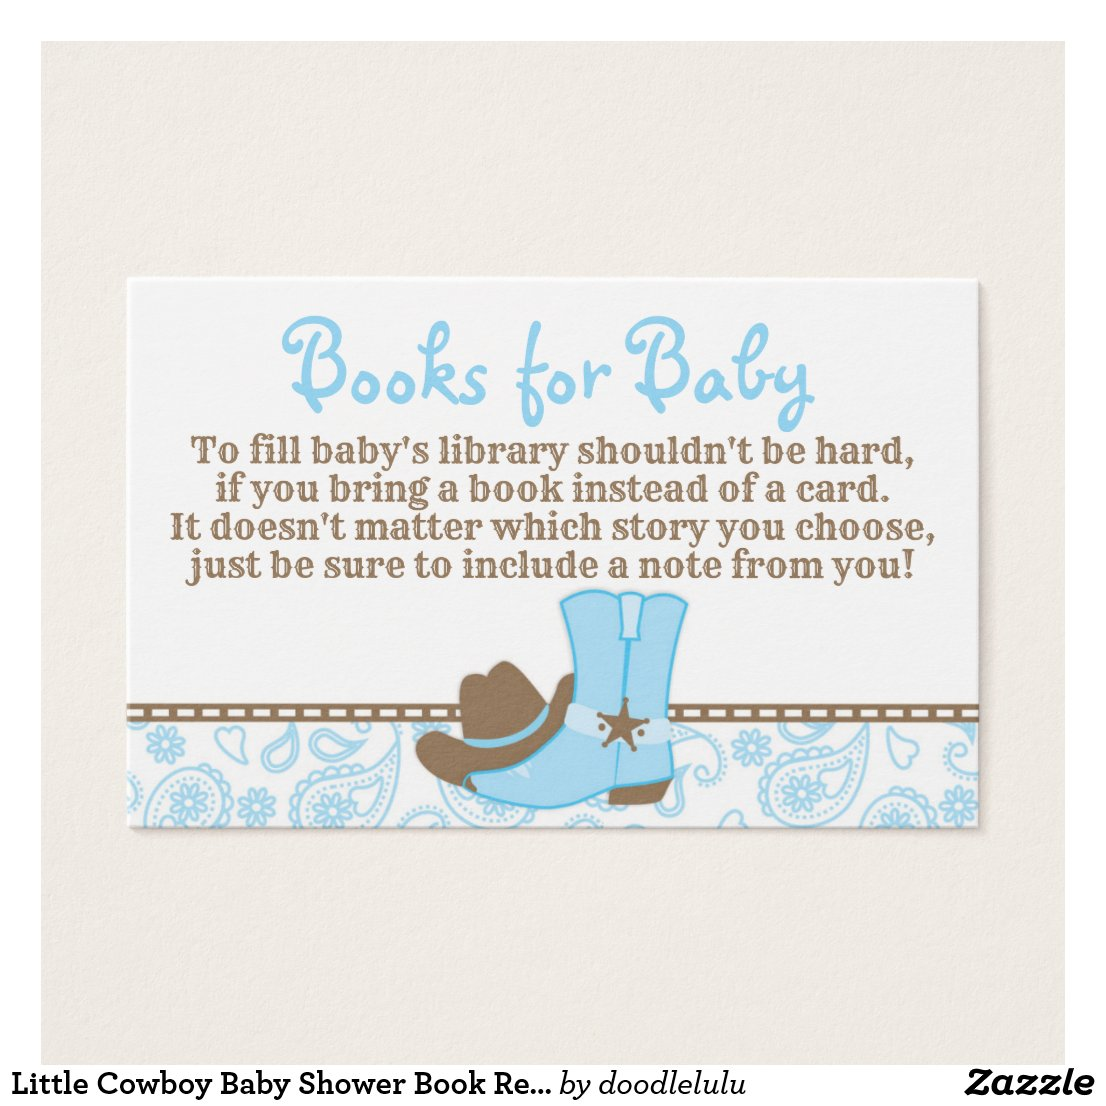 Little Cowboy Baby Shower Book Request Card